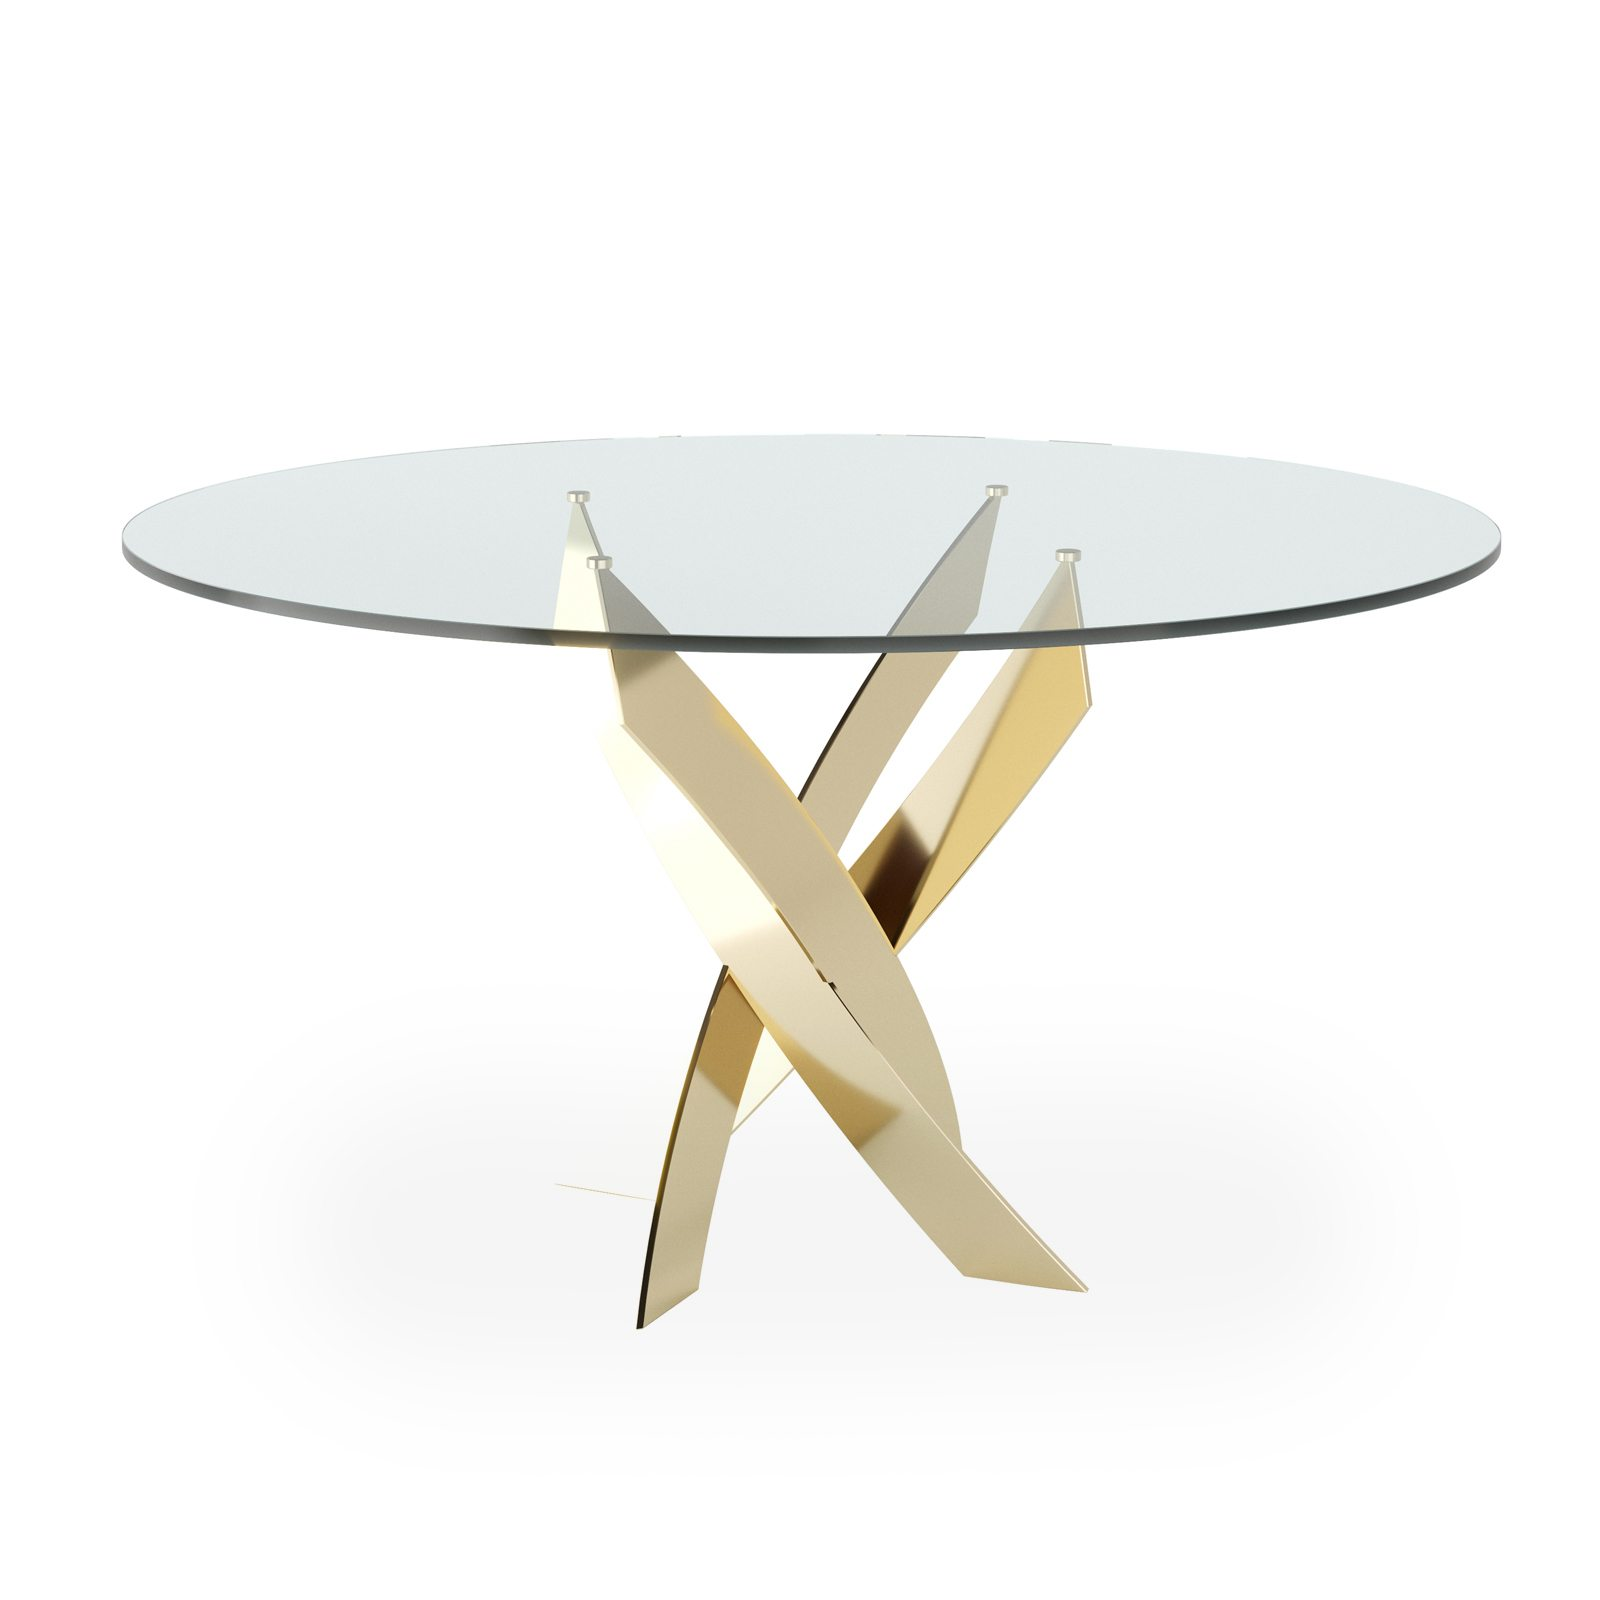 Helix-Dining-Table-Round-Brass-by-Bonham-&-Bonham-02